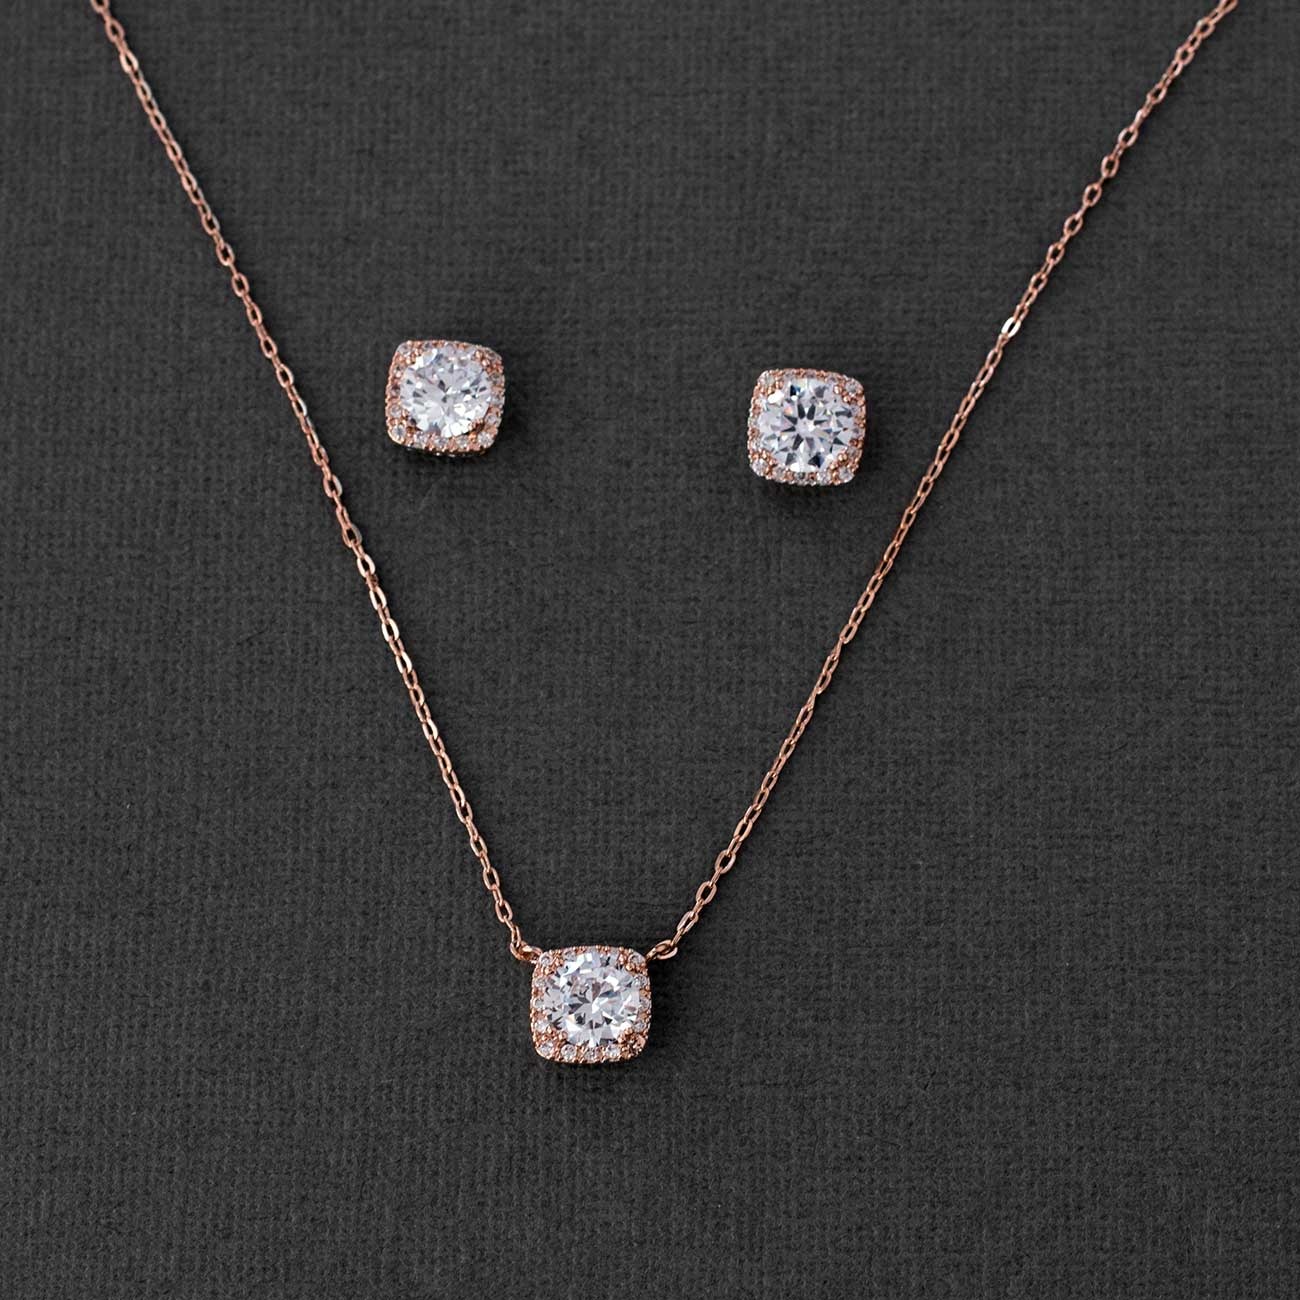 Square Cut CZ Necklace Set